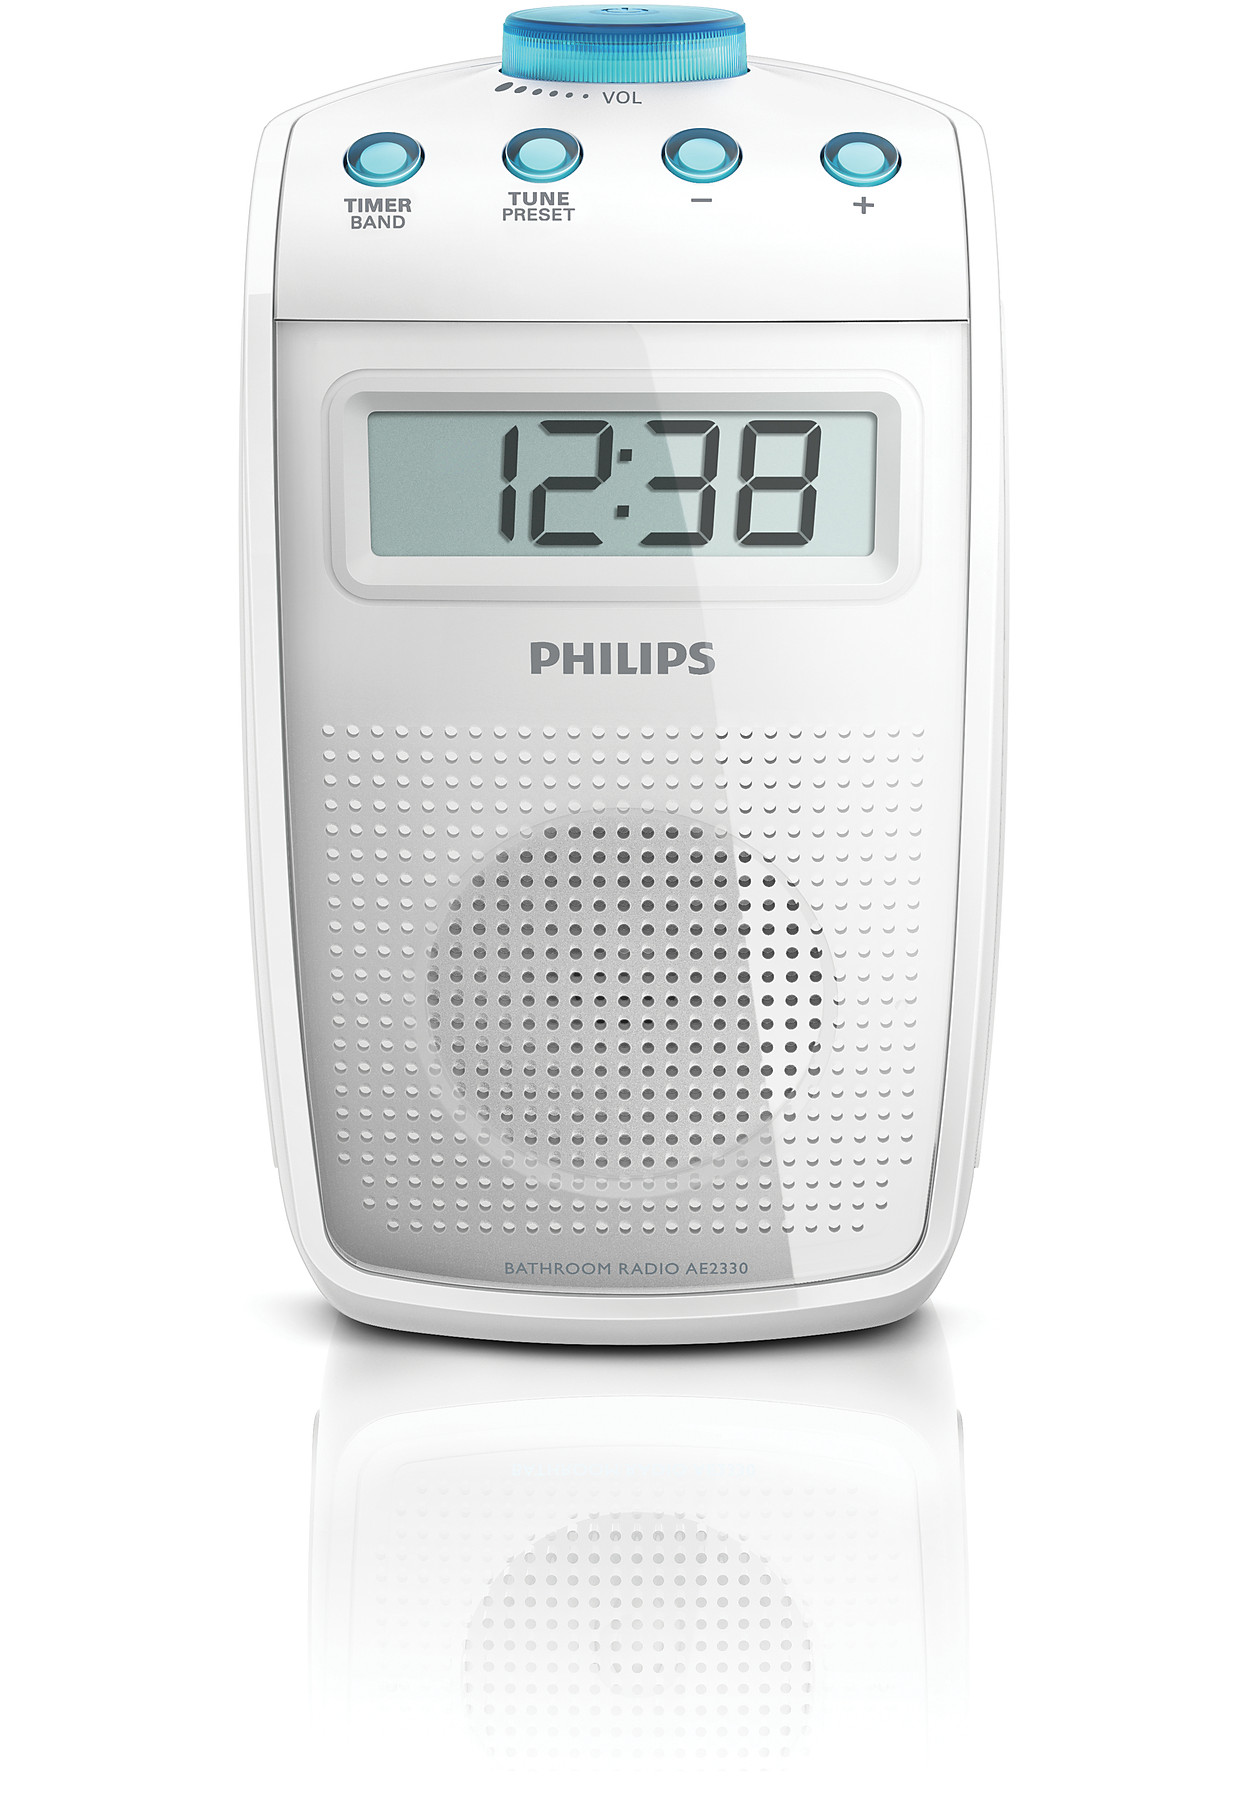 Bathroom radio ae2330 00 philips for Radio salle de bain legrand